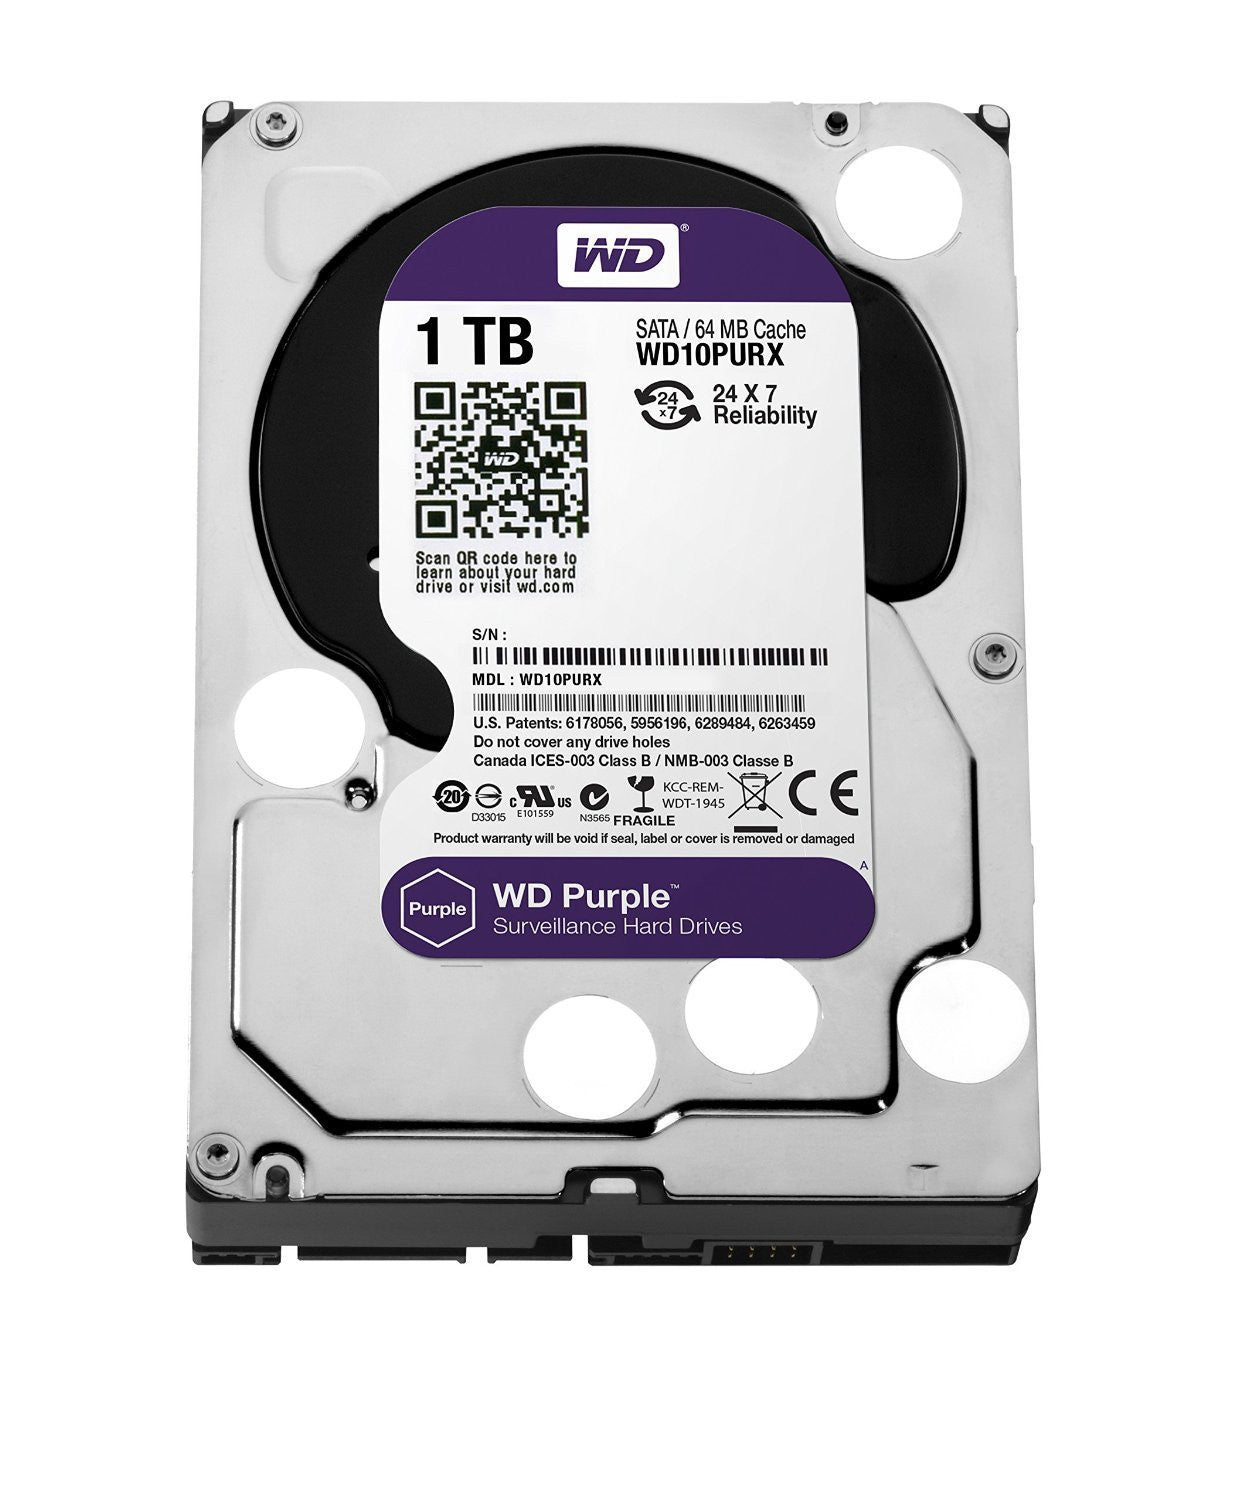 WD Purple 4TB Surveillance Hard Disk Drive - 5400 RPM Class SATA 6 Gb/s 64MB Cache 3.5 Inch - WD40PURX - Security-Smart-Shop